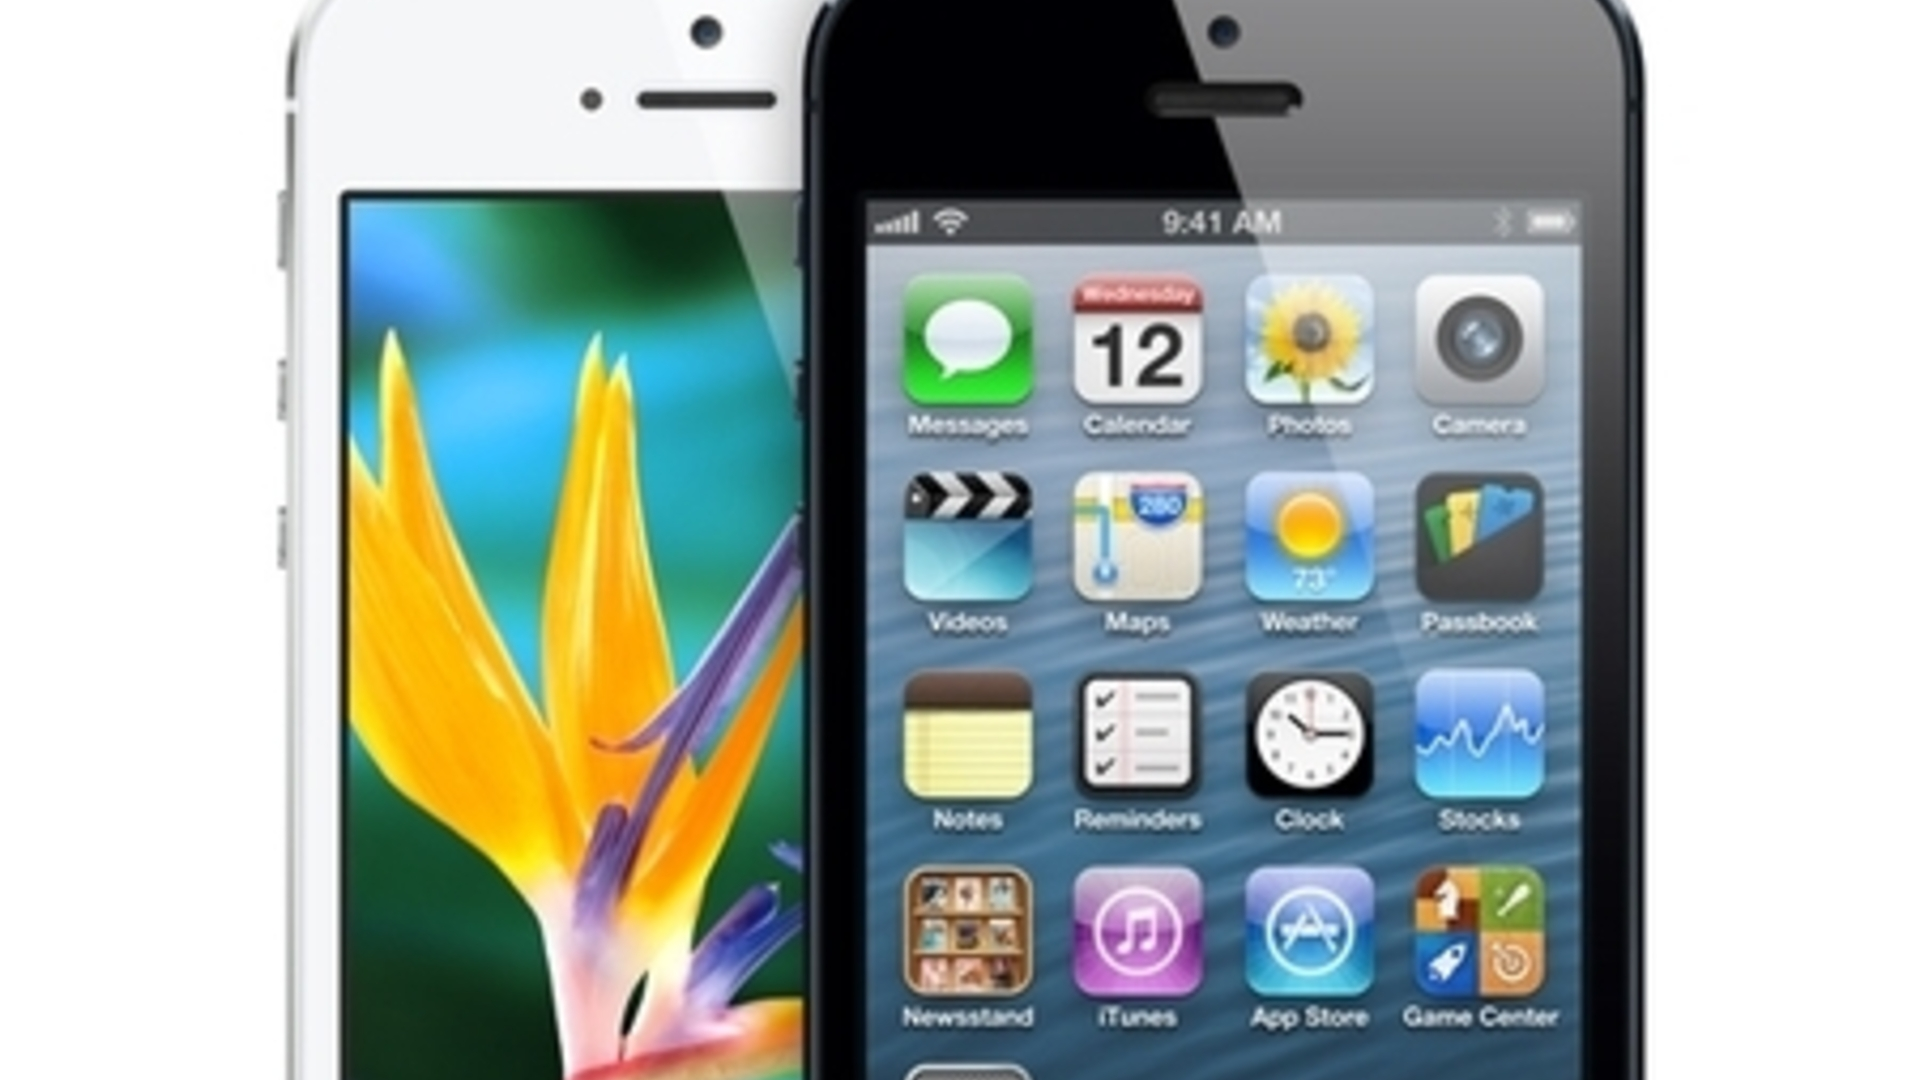 Iphone 5 Review Samsung Galaxy Infinite 4 Inch Display Android 41 Jellybean Dual Core 12 Ghz Processor